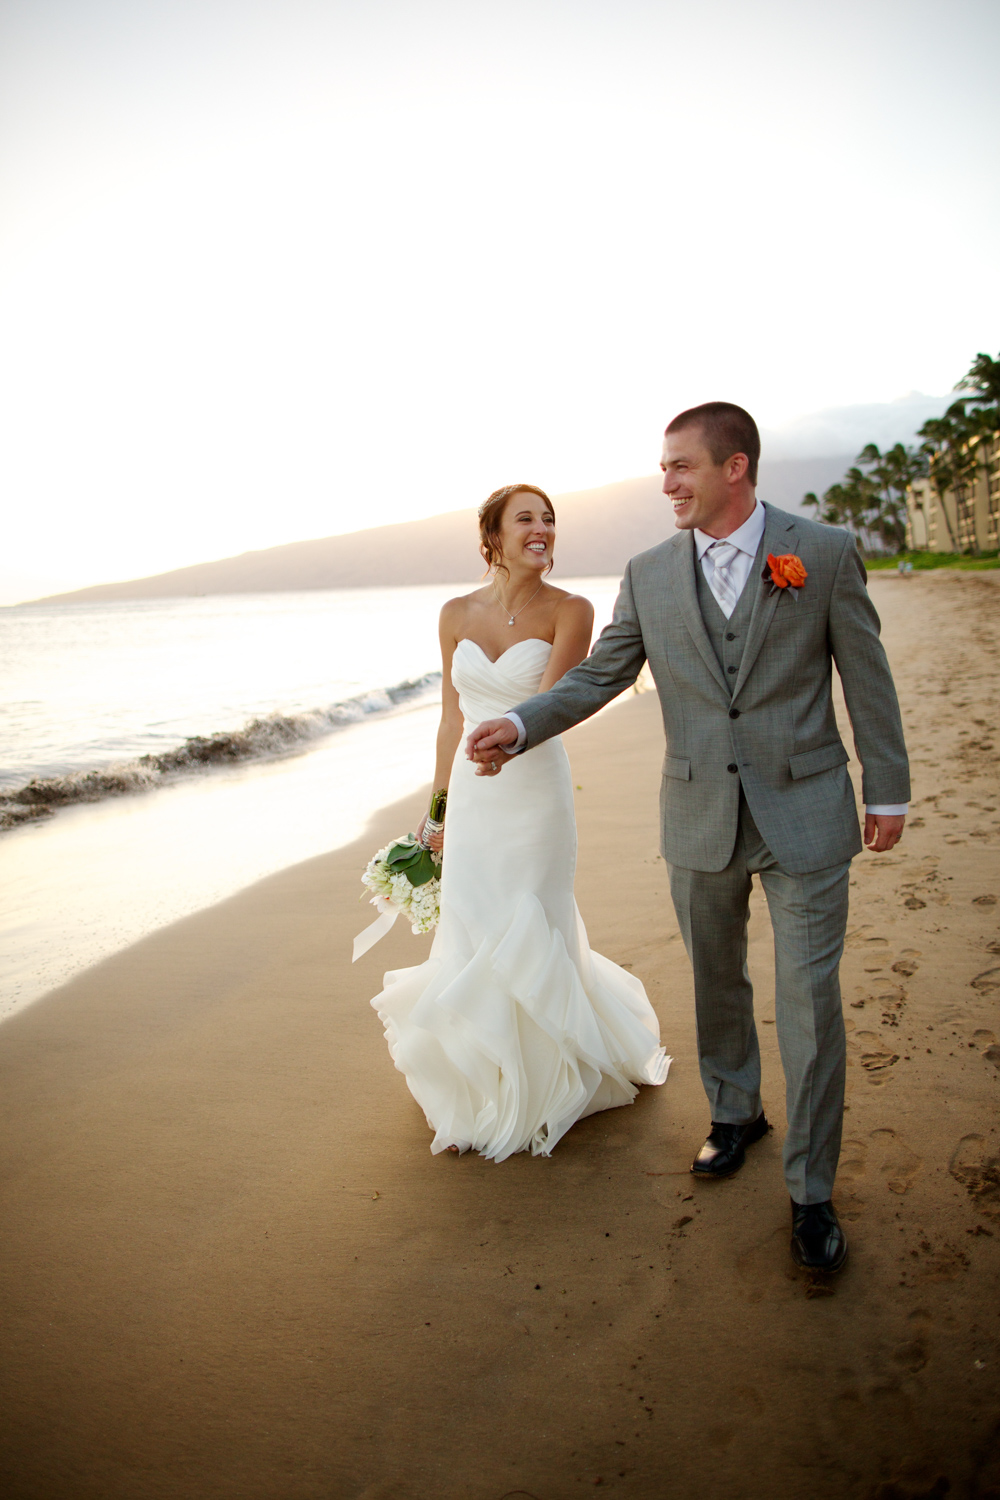 bliss-maui-wedding-sugar-beach-events-anna-kim-photography-katelyn-eric-26.jpg